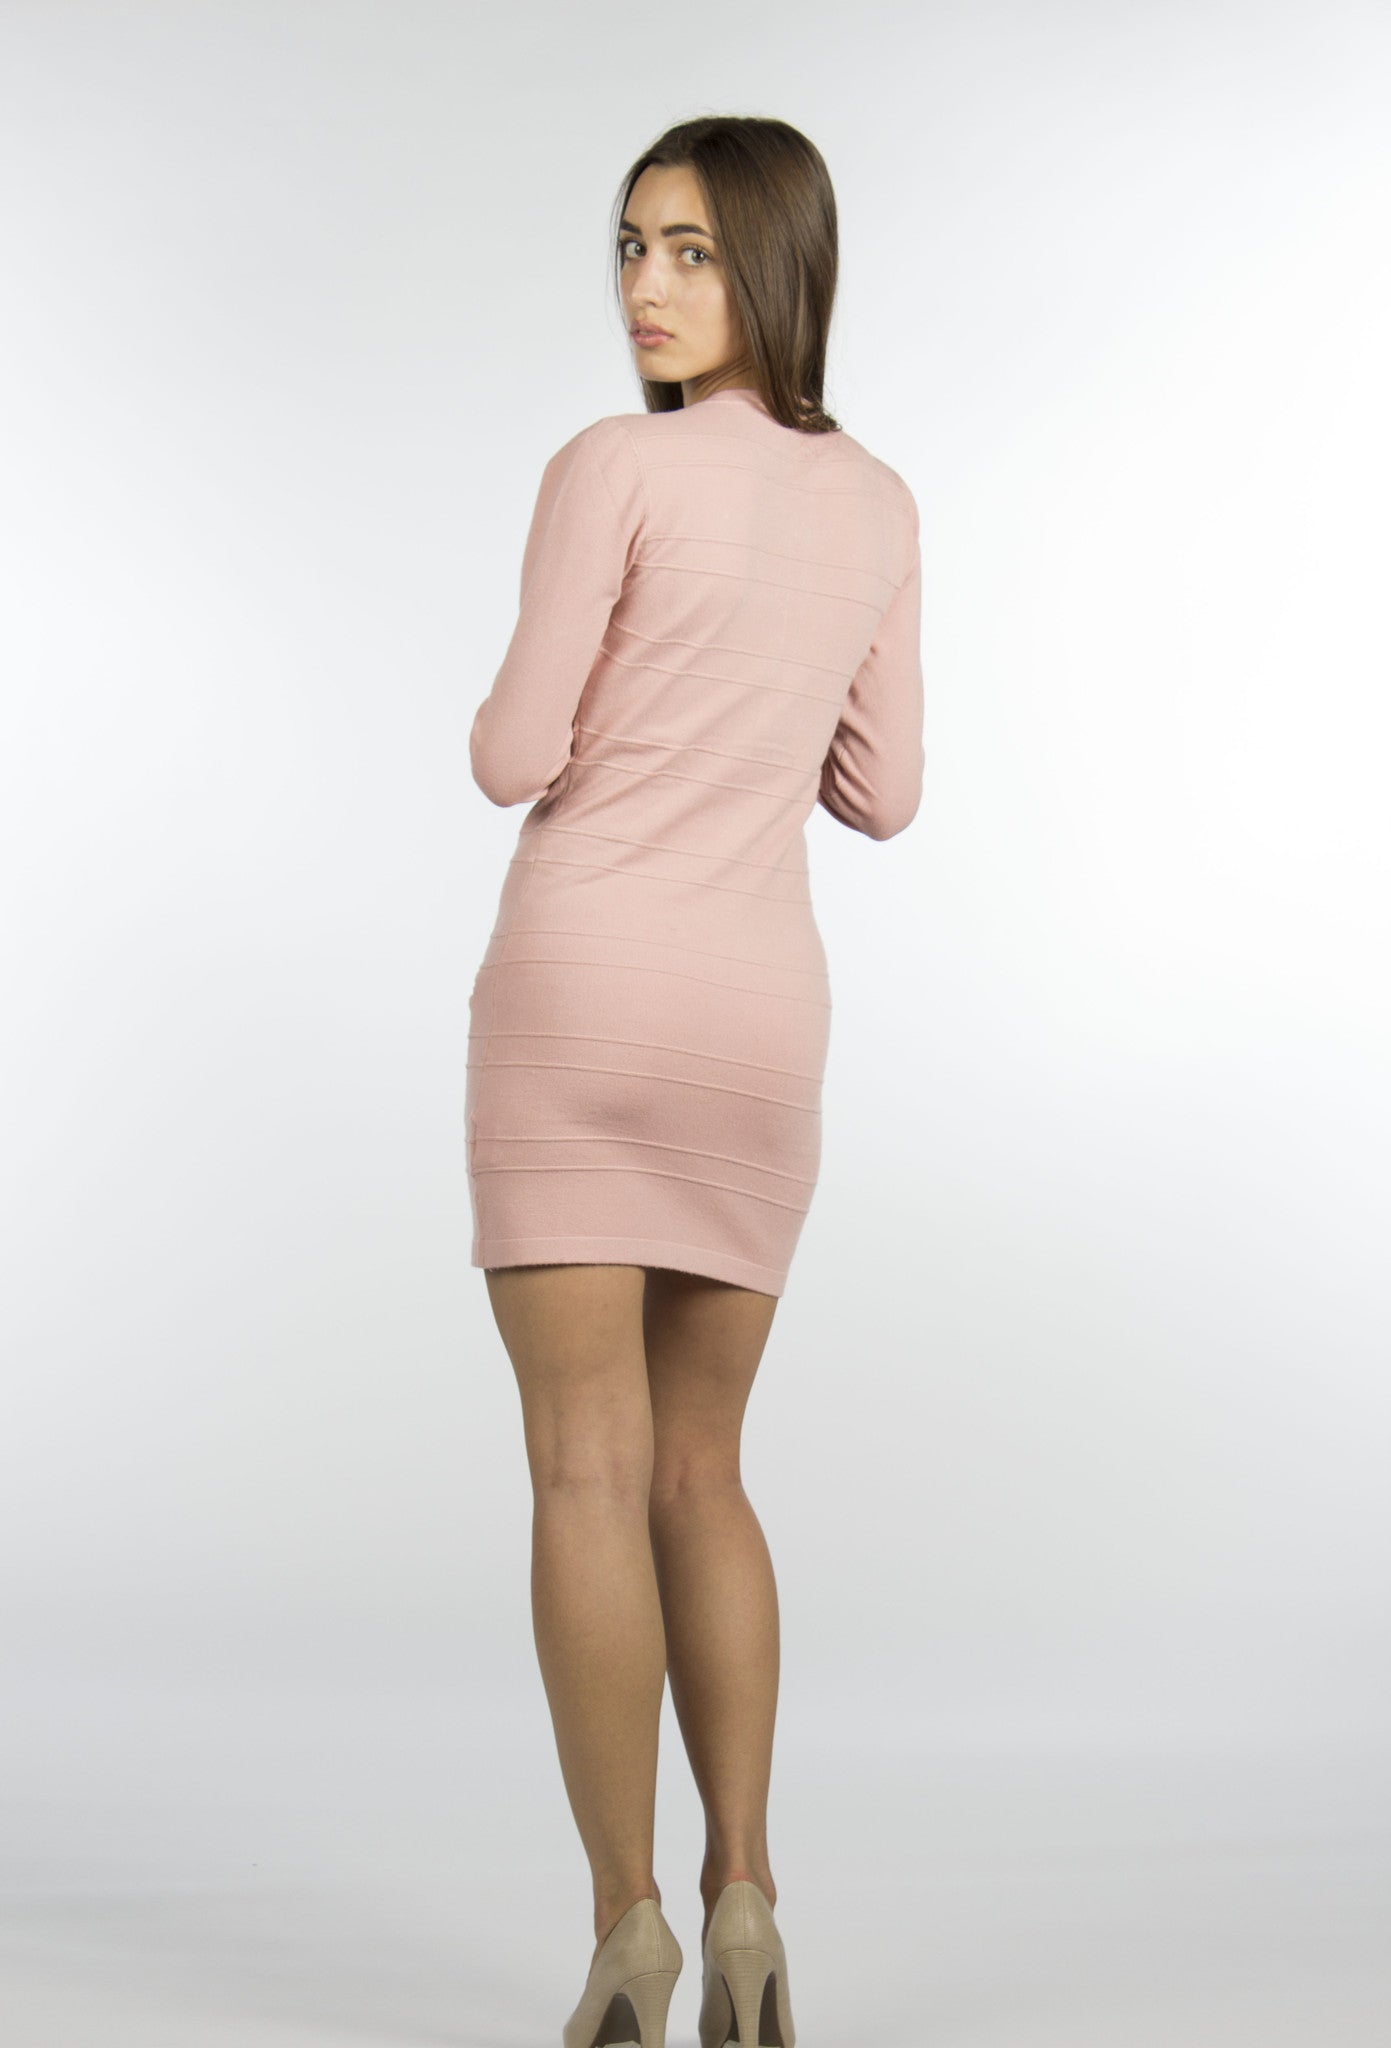 pink dress long sleeve with zipper in front